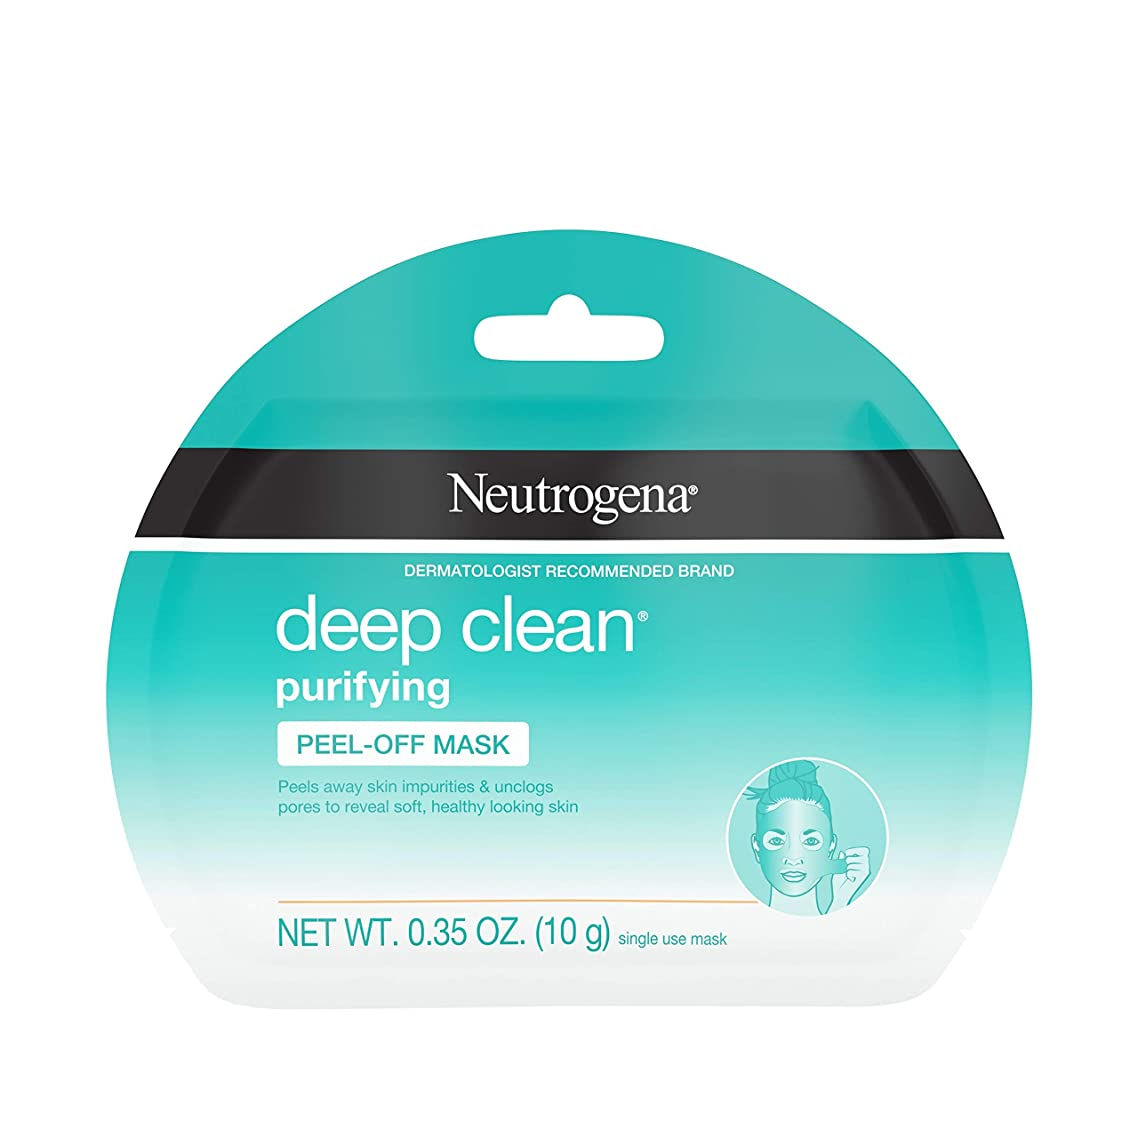 Neutrogena Deep Clean Purifying Peel-Off Face Mask, Oil-Free & Non-Comedogenic Deep Pore Cleansing Single-Use Facial Mask, Single-Use, 1 ct